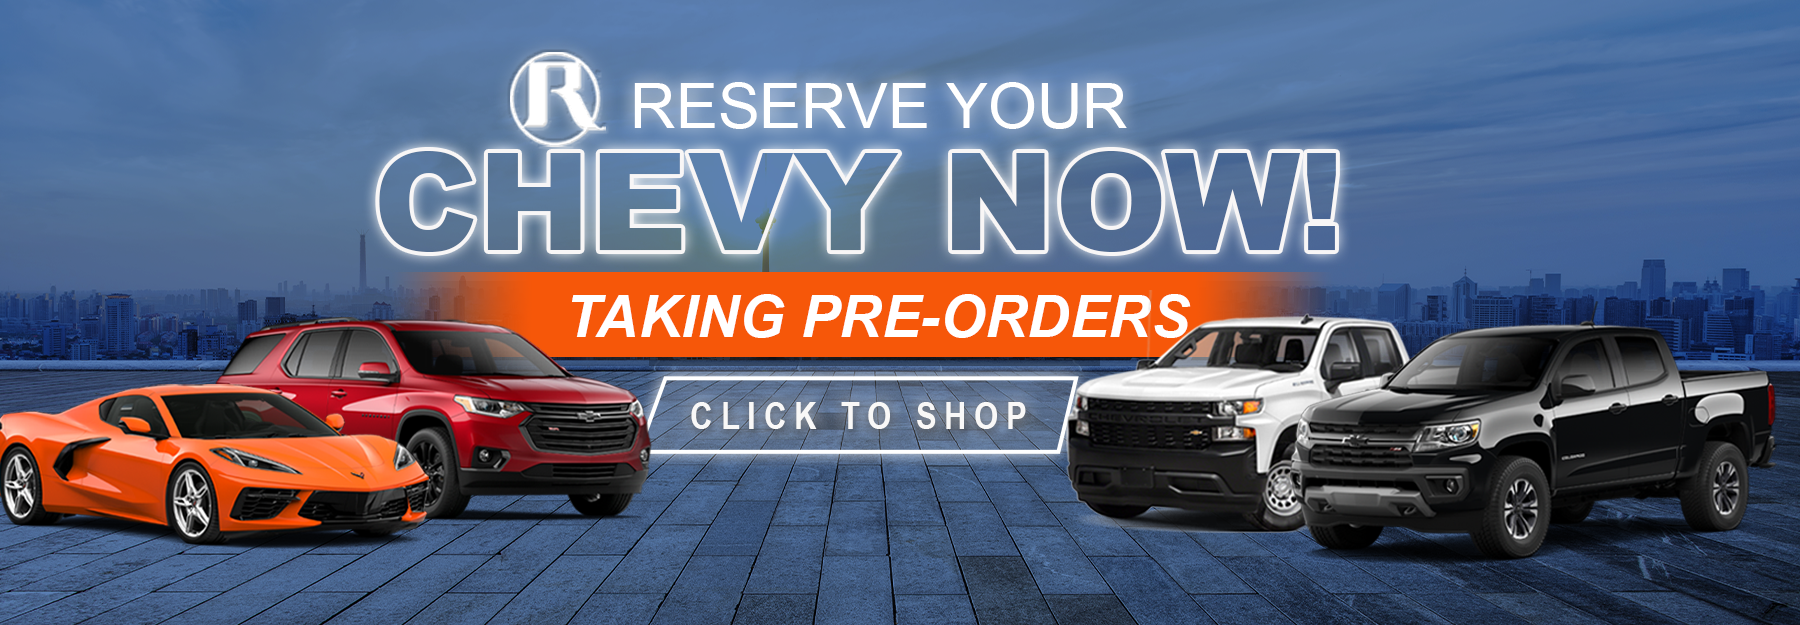 Reed Chevy Reserve Shop Now